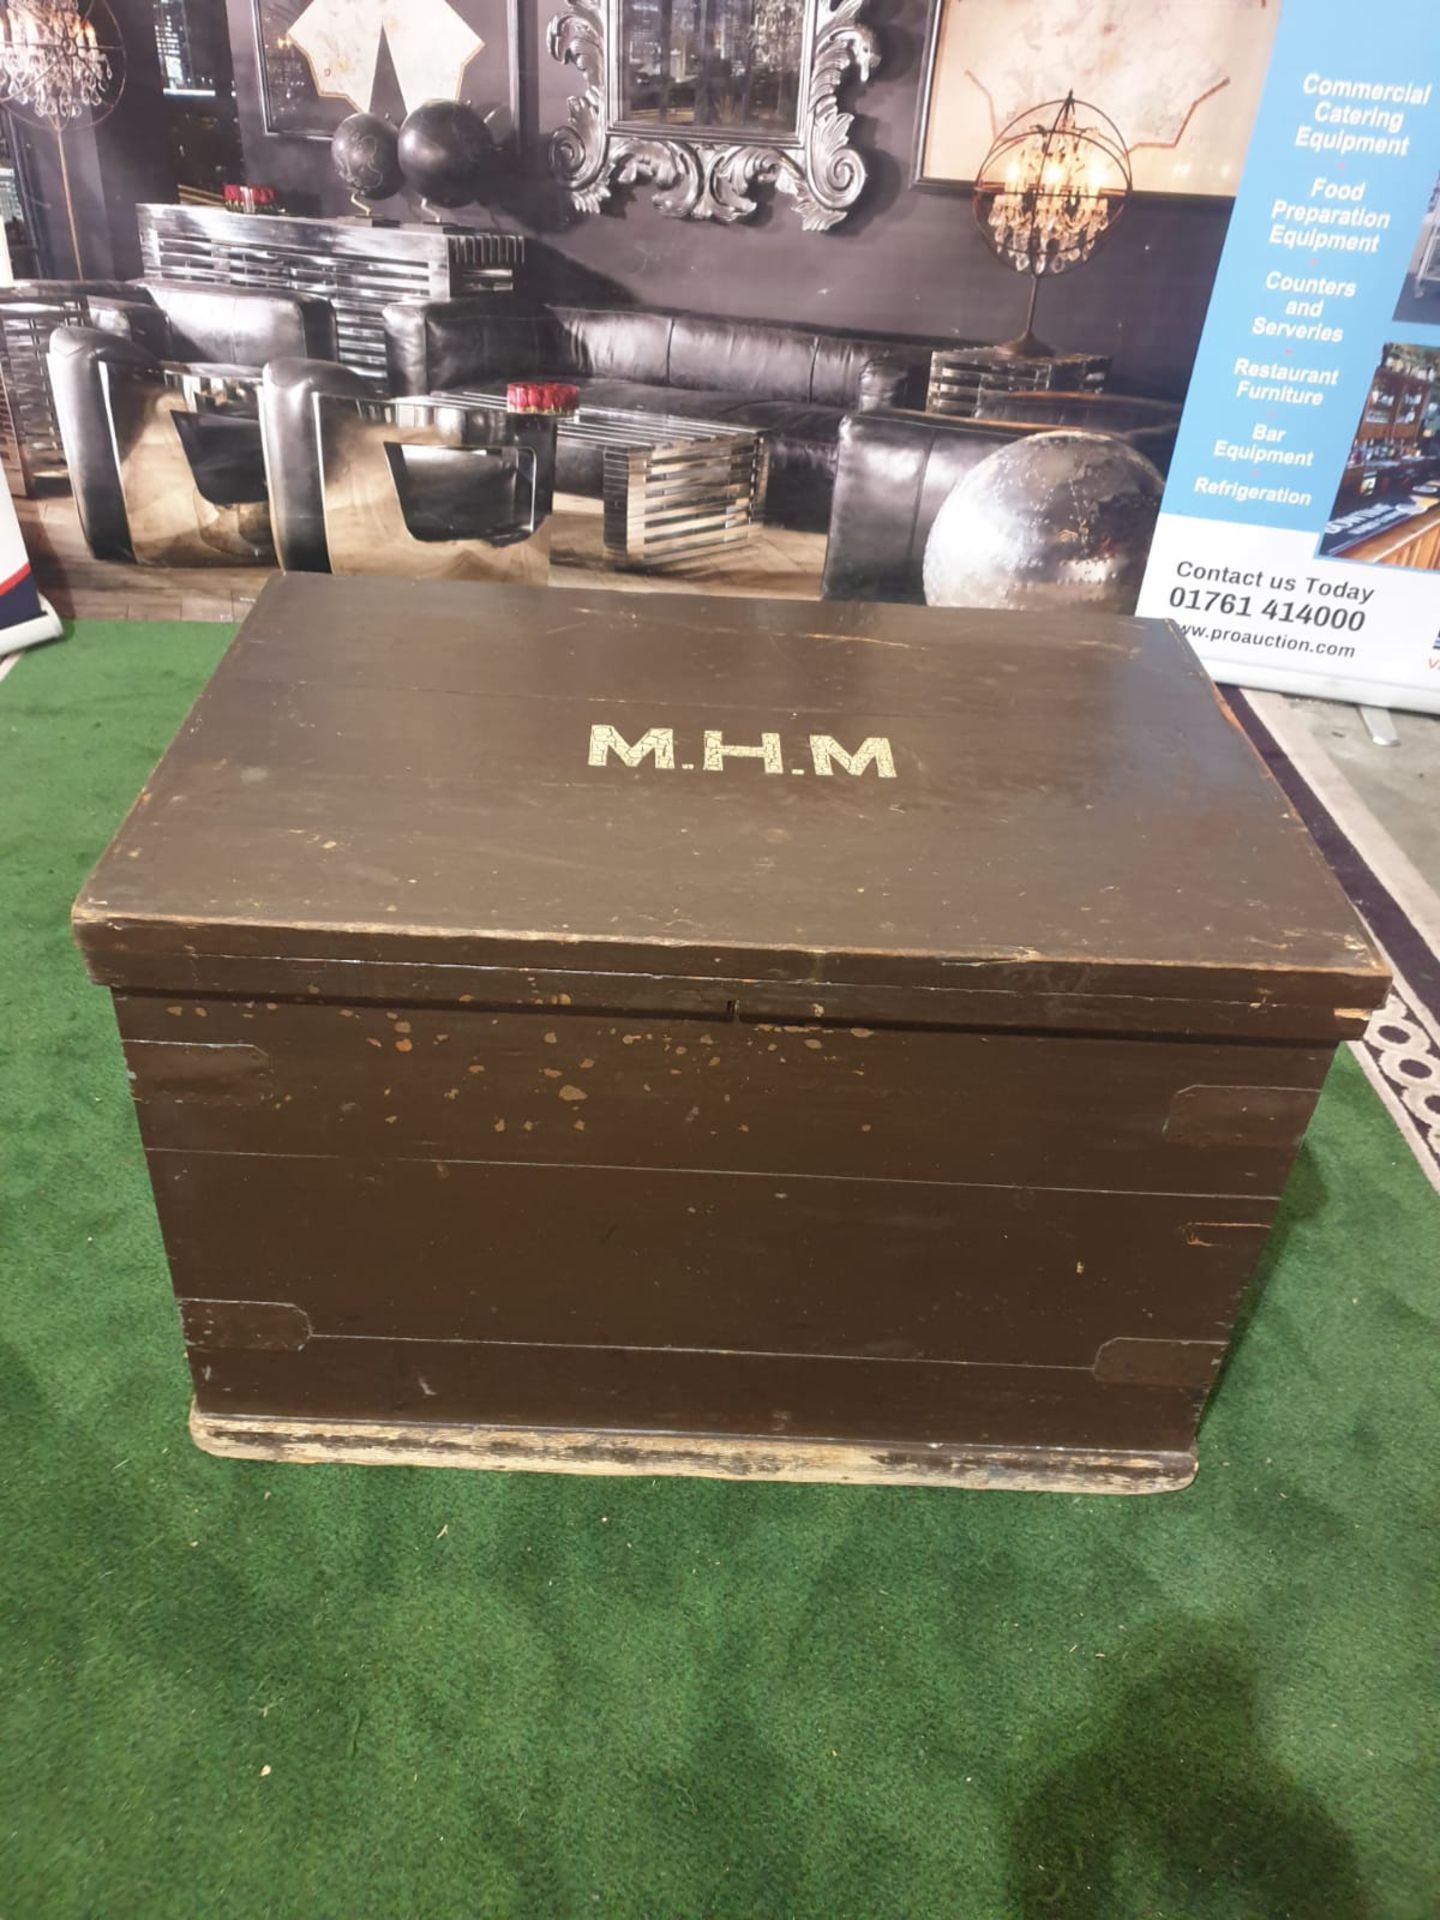 A late Victorian painted pine travel chest. The hinged cover with hasp and ownership title 'M.